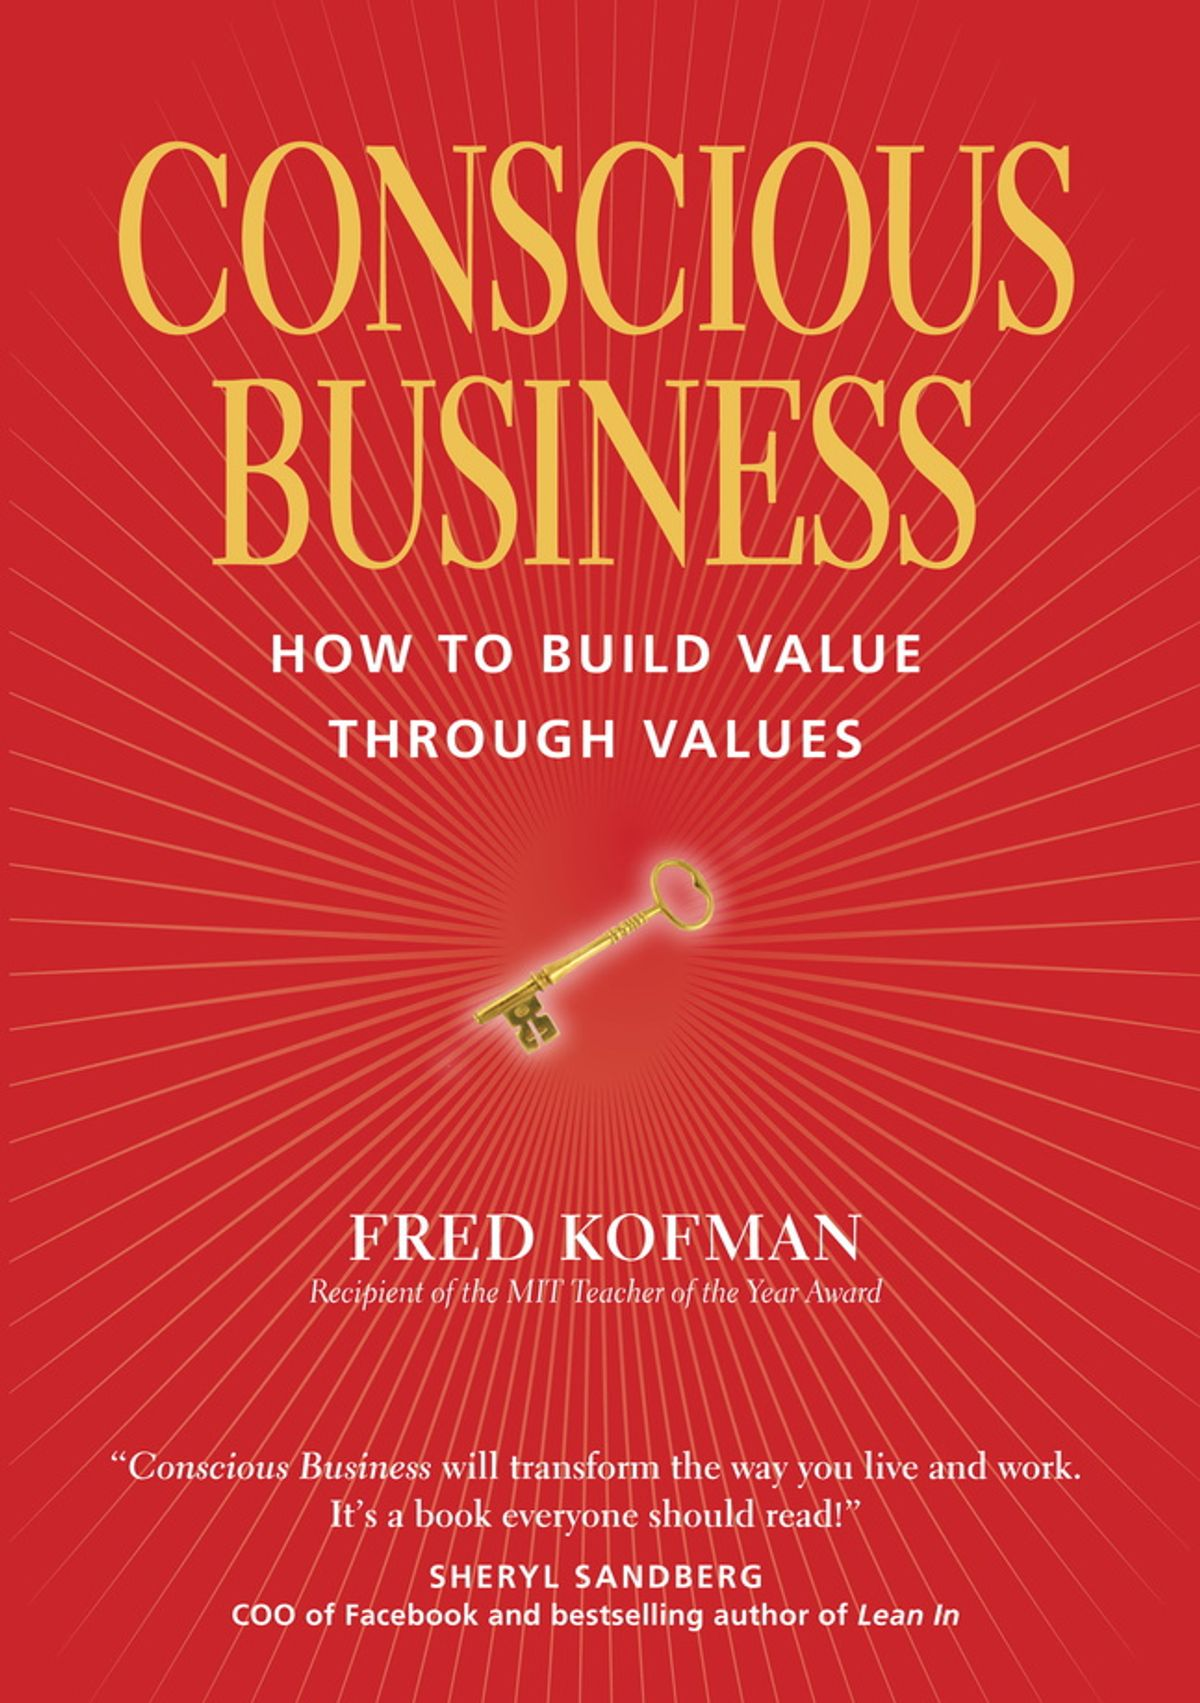 Book Cover of Conscious Business